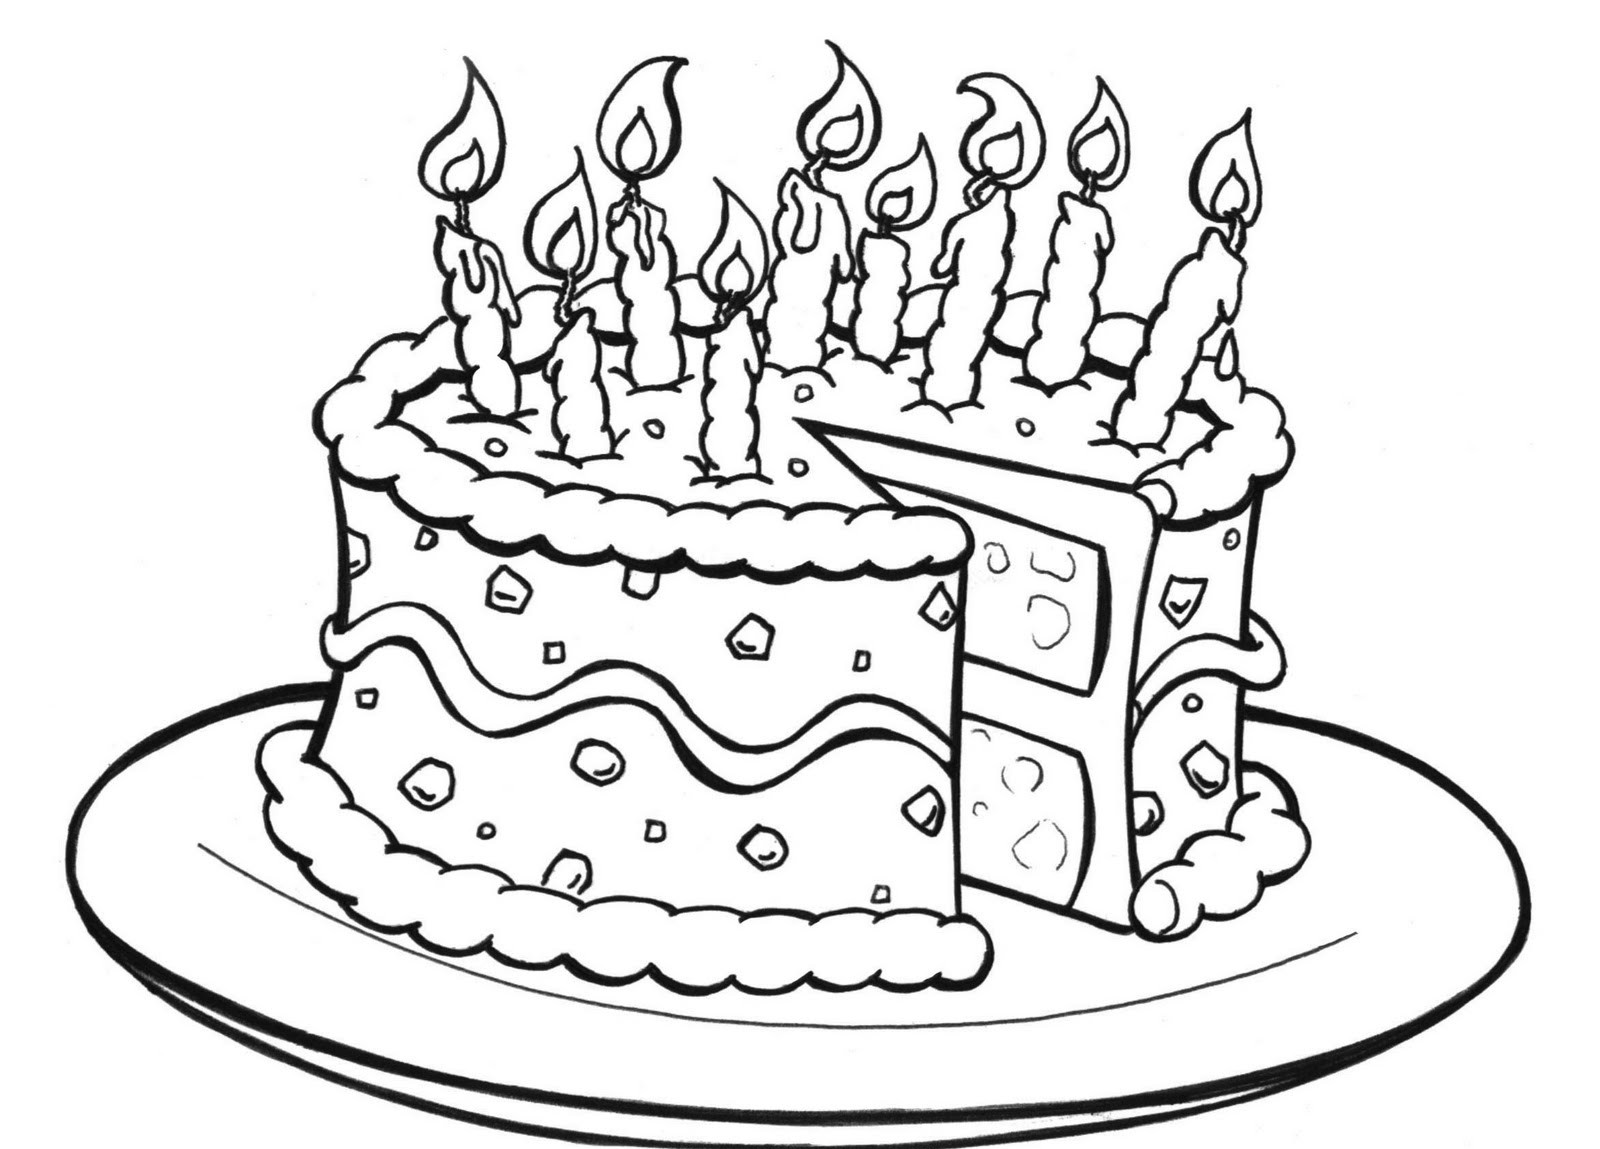 Best Birthday Cake Coloring Page Contemporary New Printable